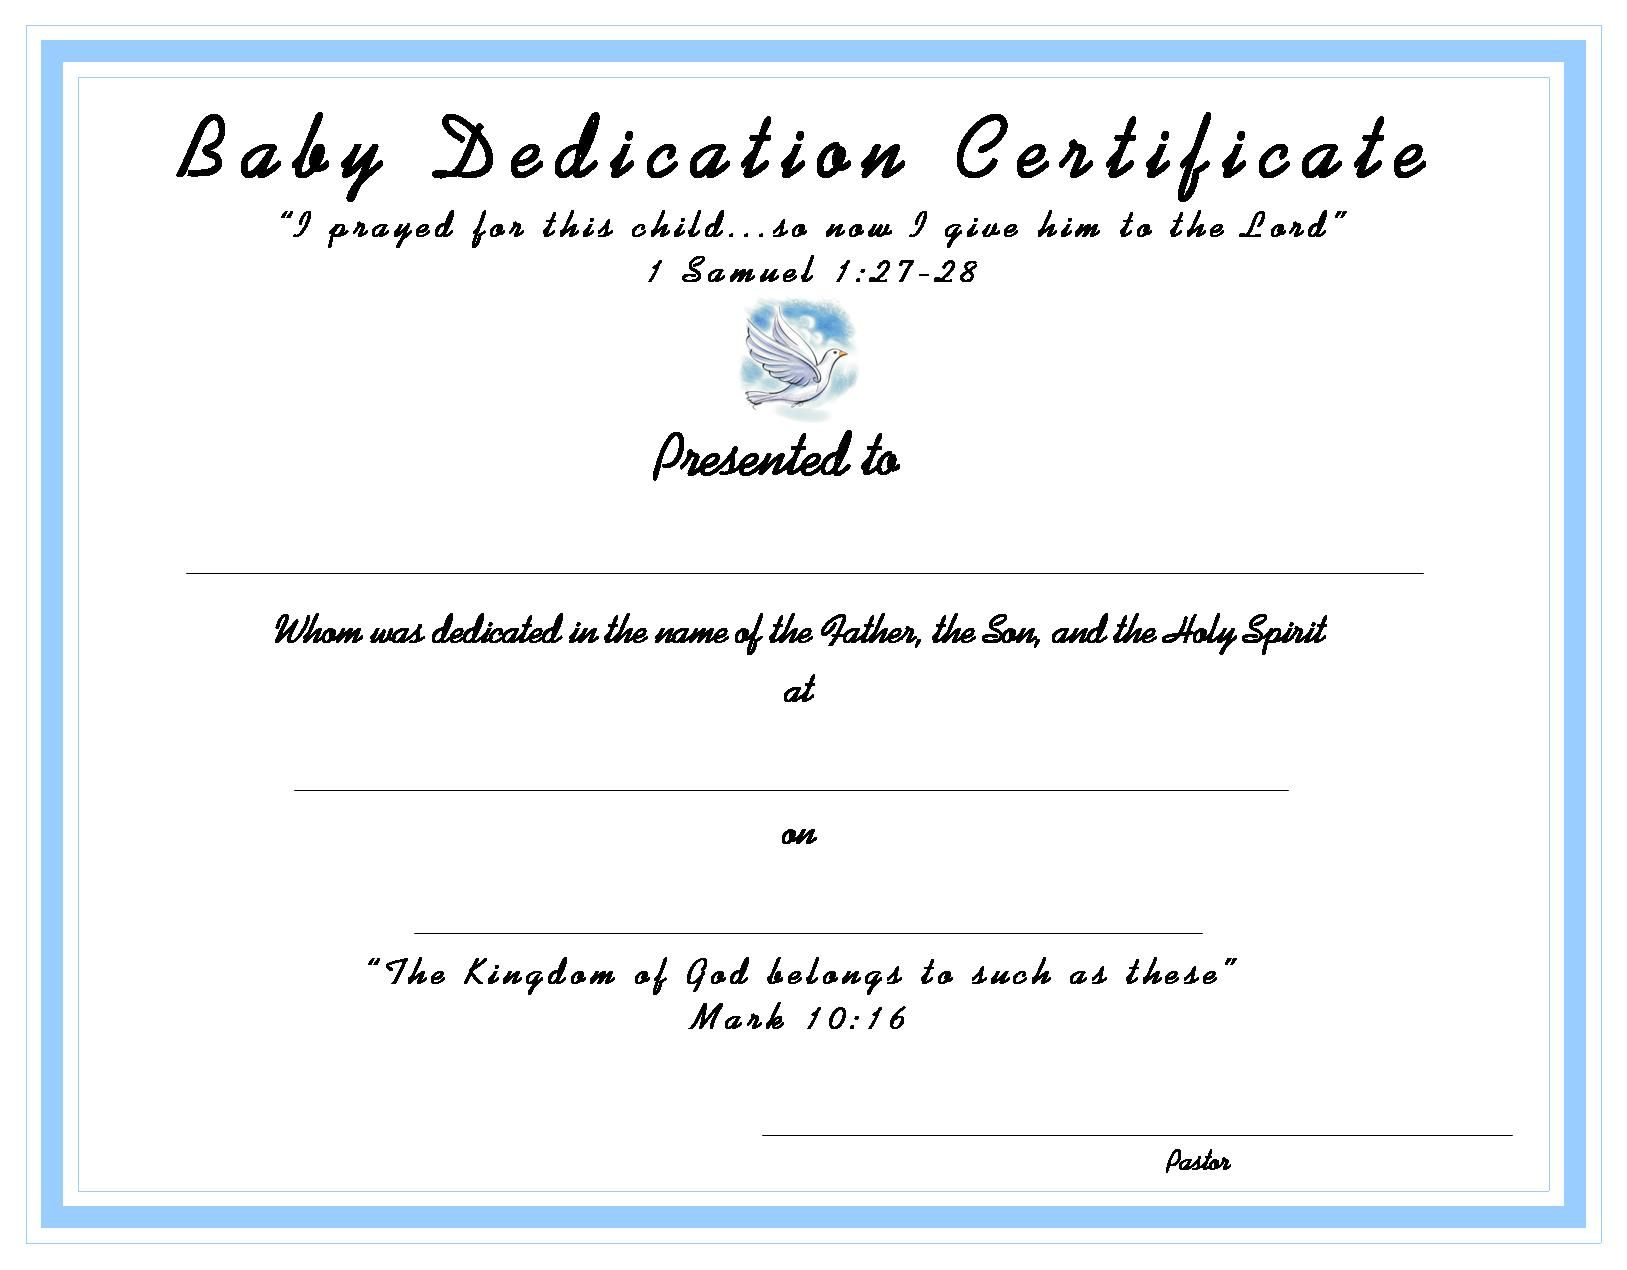 Certificatetemplate baby dedication certificate for your certificatetemplate baby dedication certificate for your kids ministry xflitez Gallery